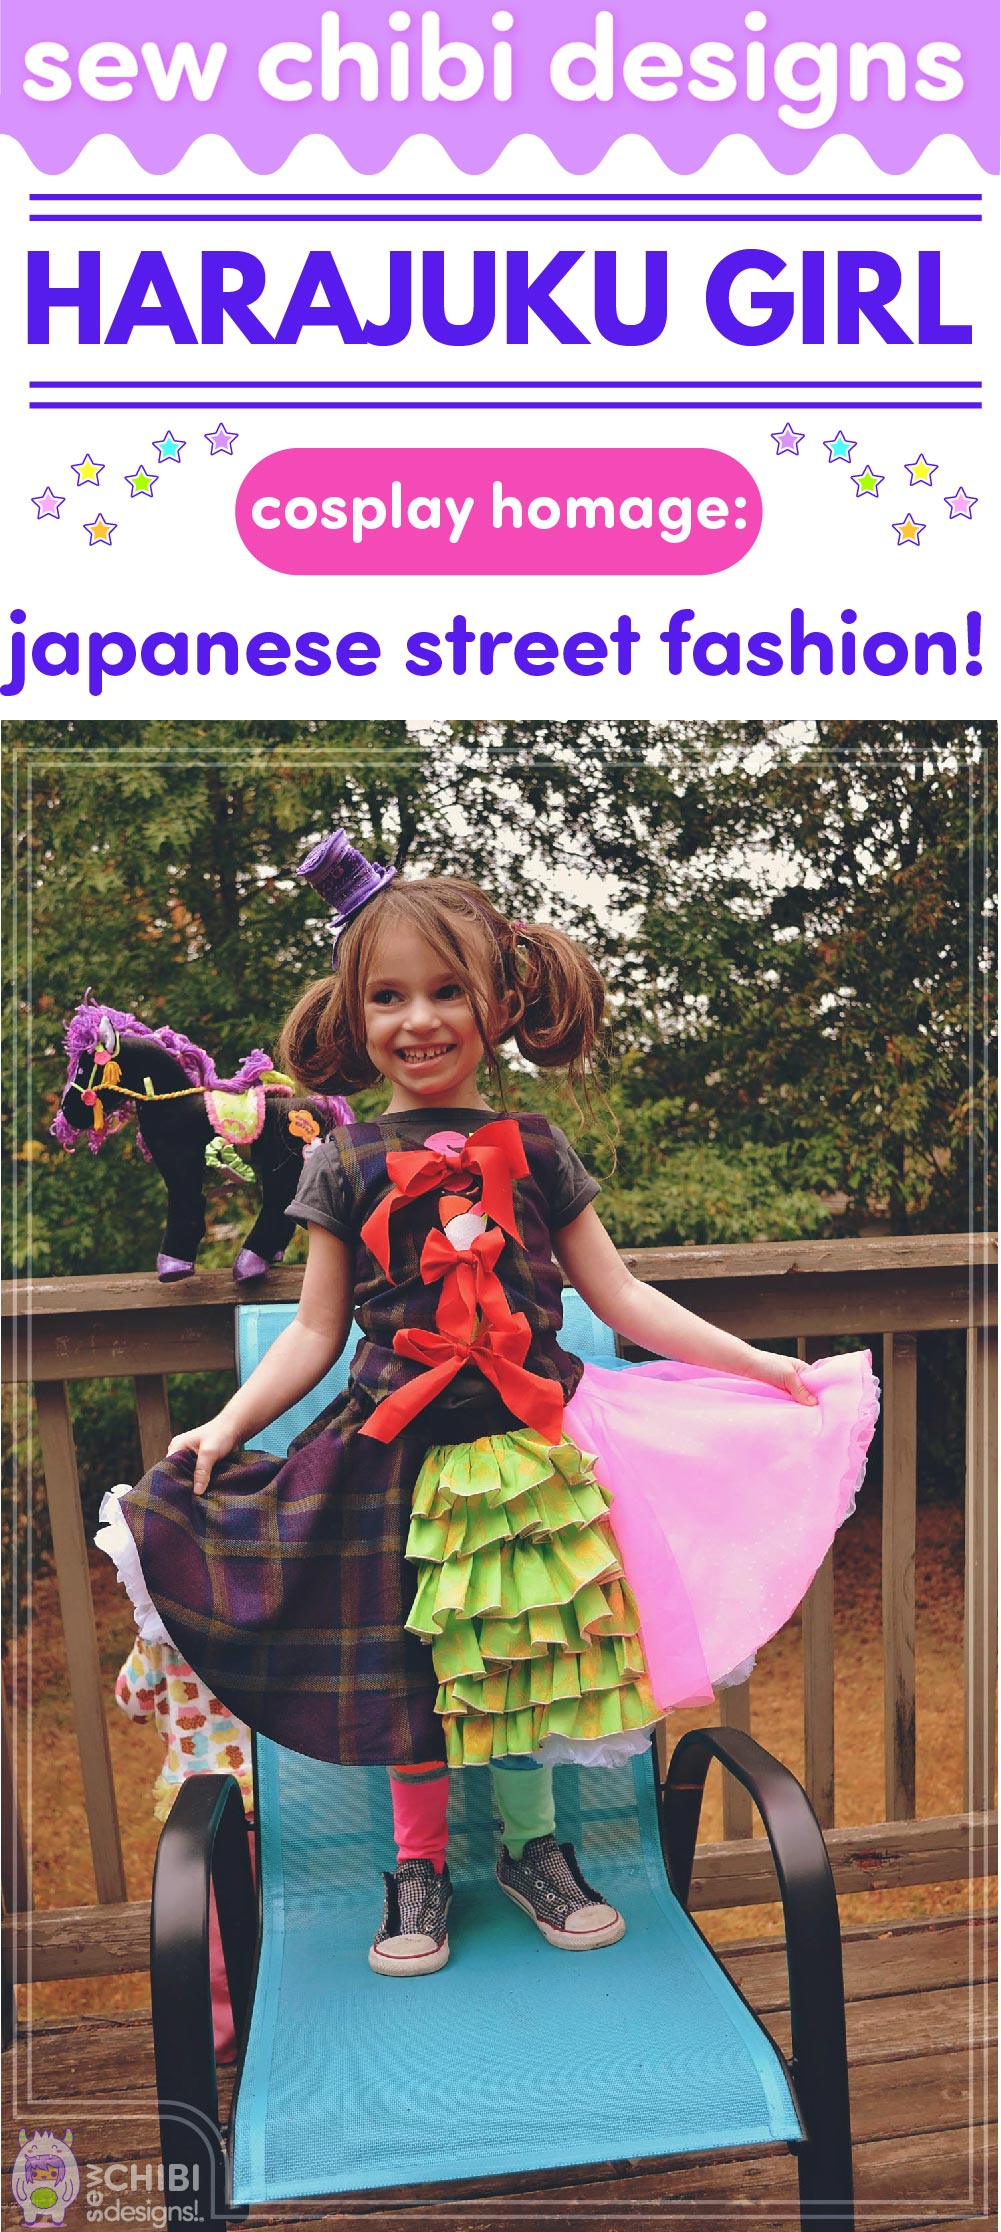 chibi cosplay inspired by Harajuku Tokyo Japanese Street Fashion sewn by Sew Chibi Designs for Sew Geeky